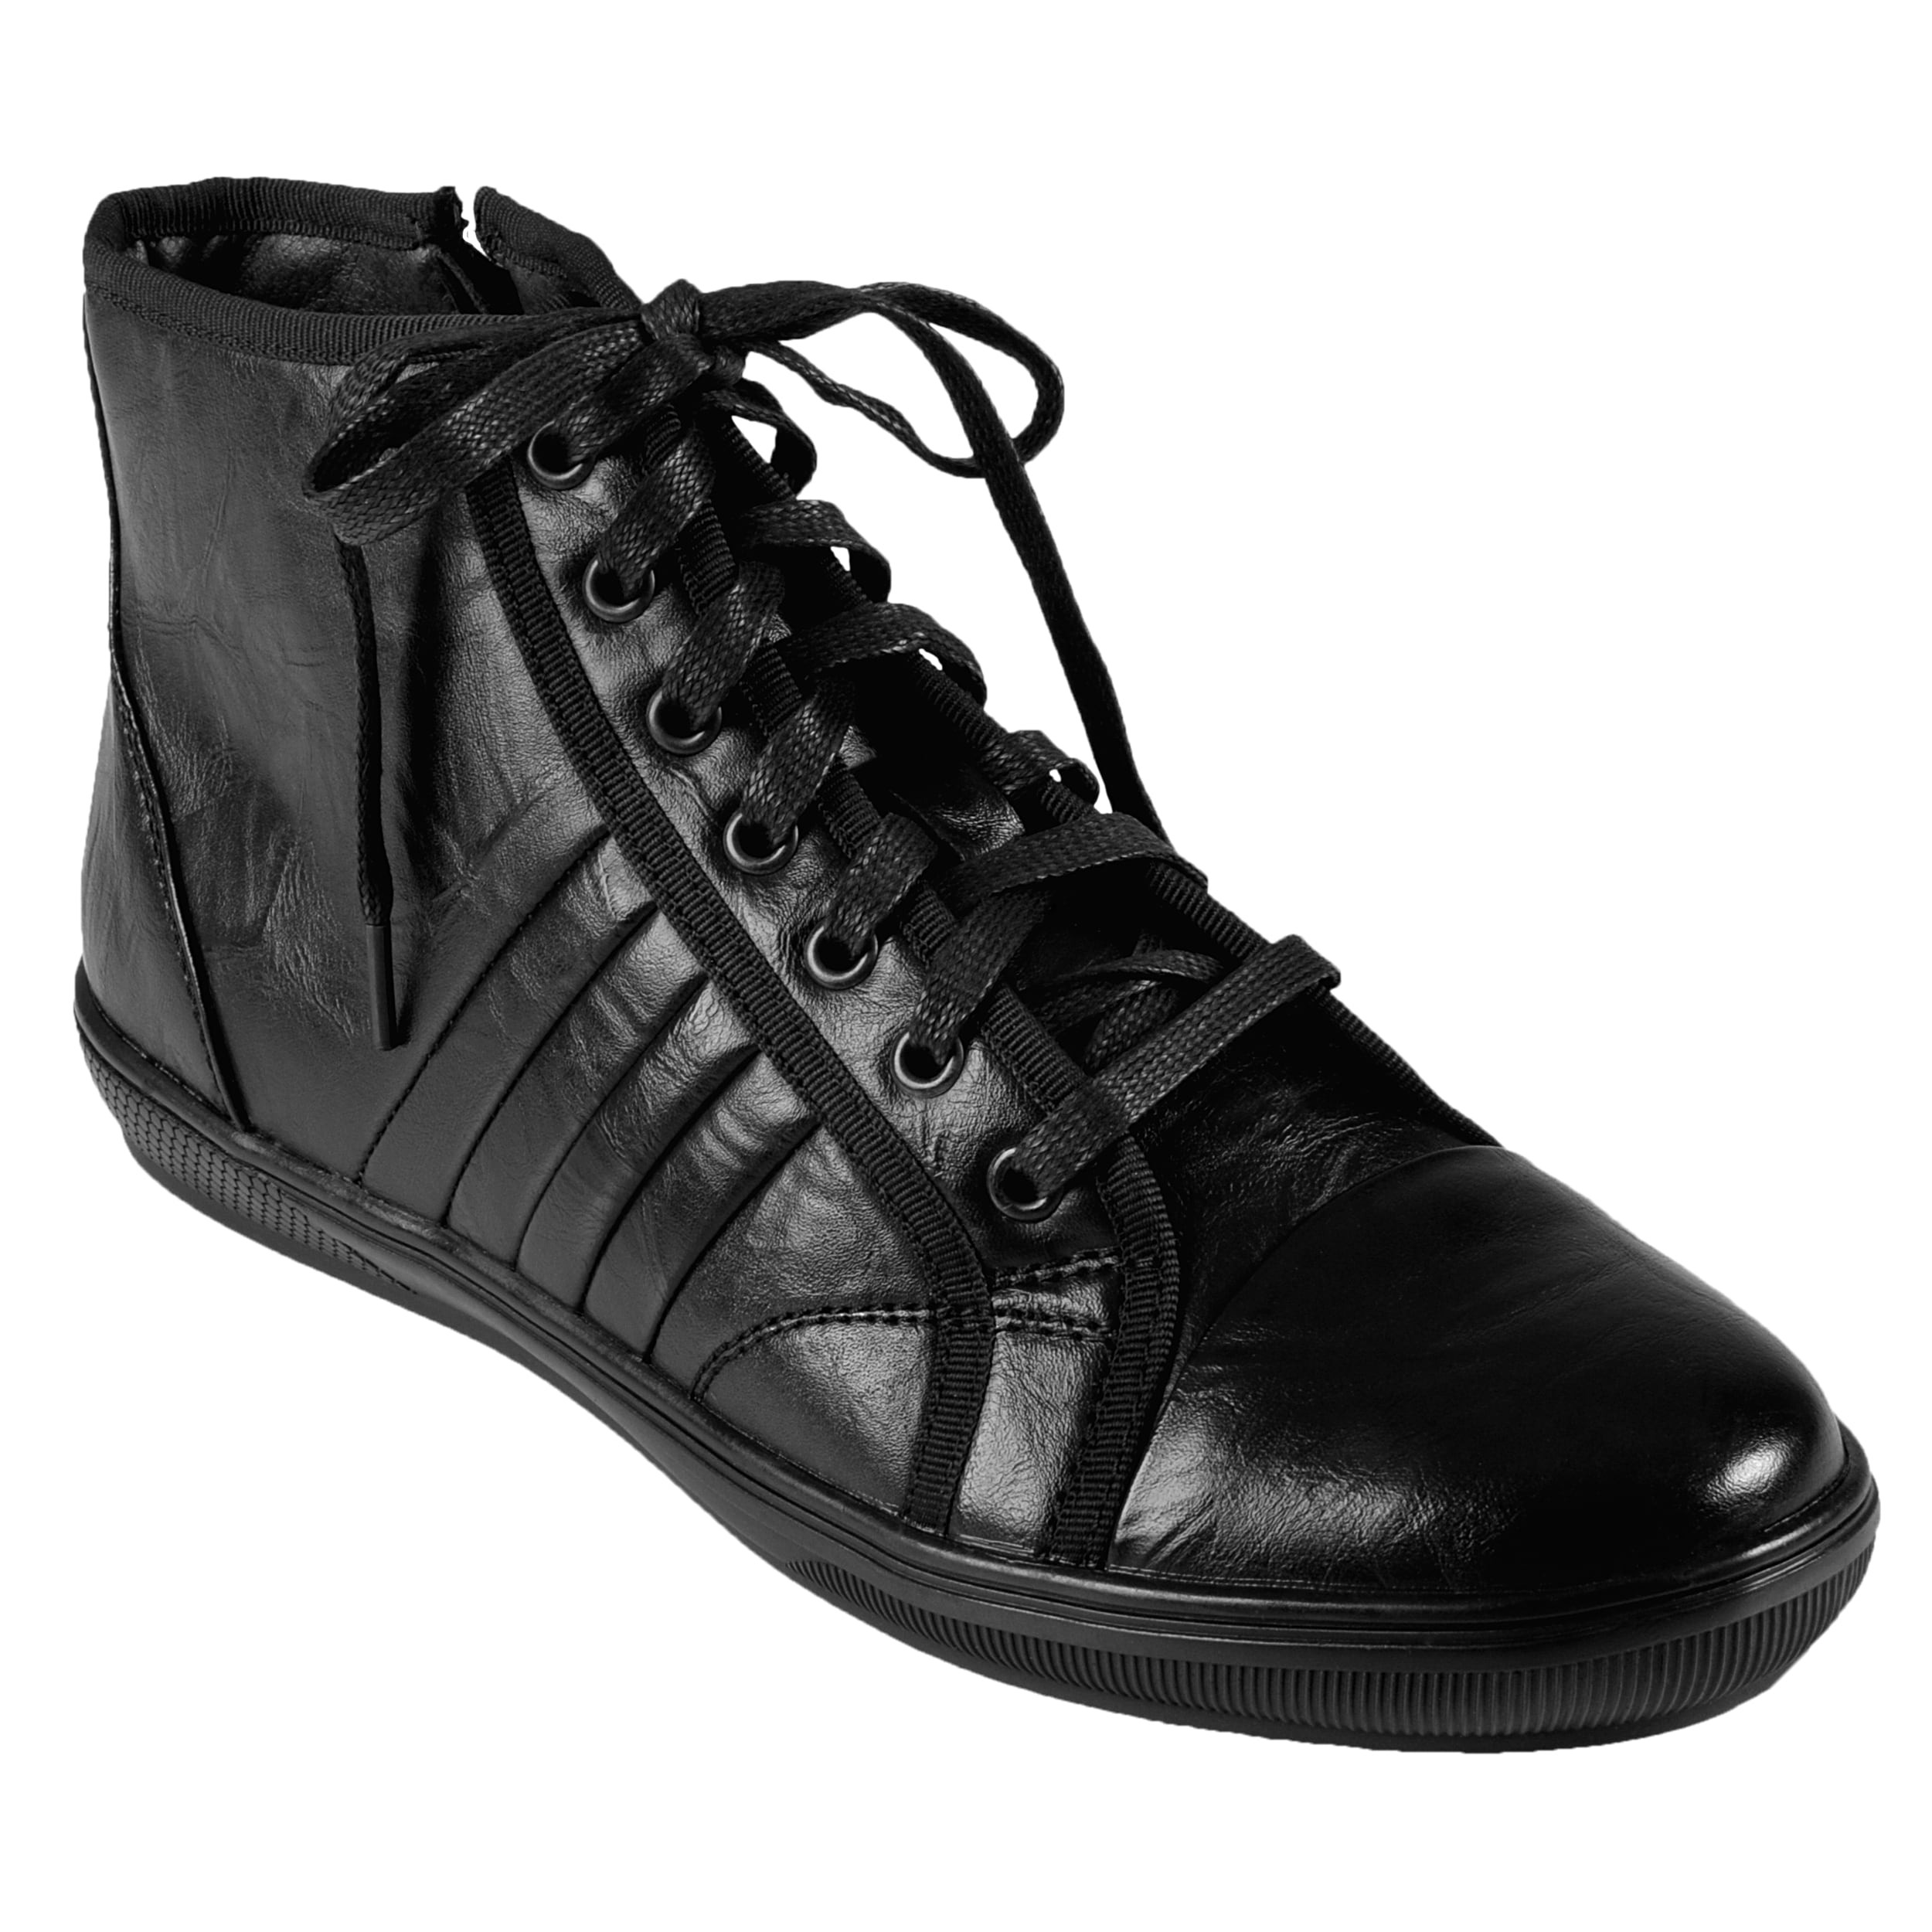 Boston Traveler Men's High Top Lace-up Sneakers - Thumbnail 0